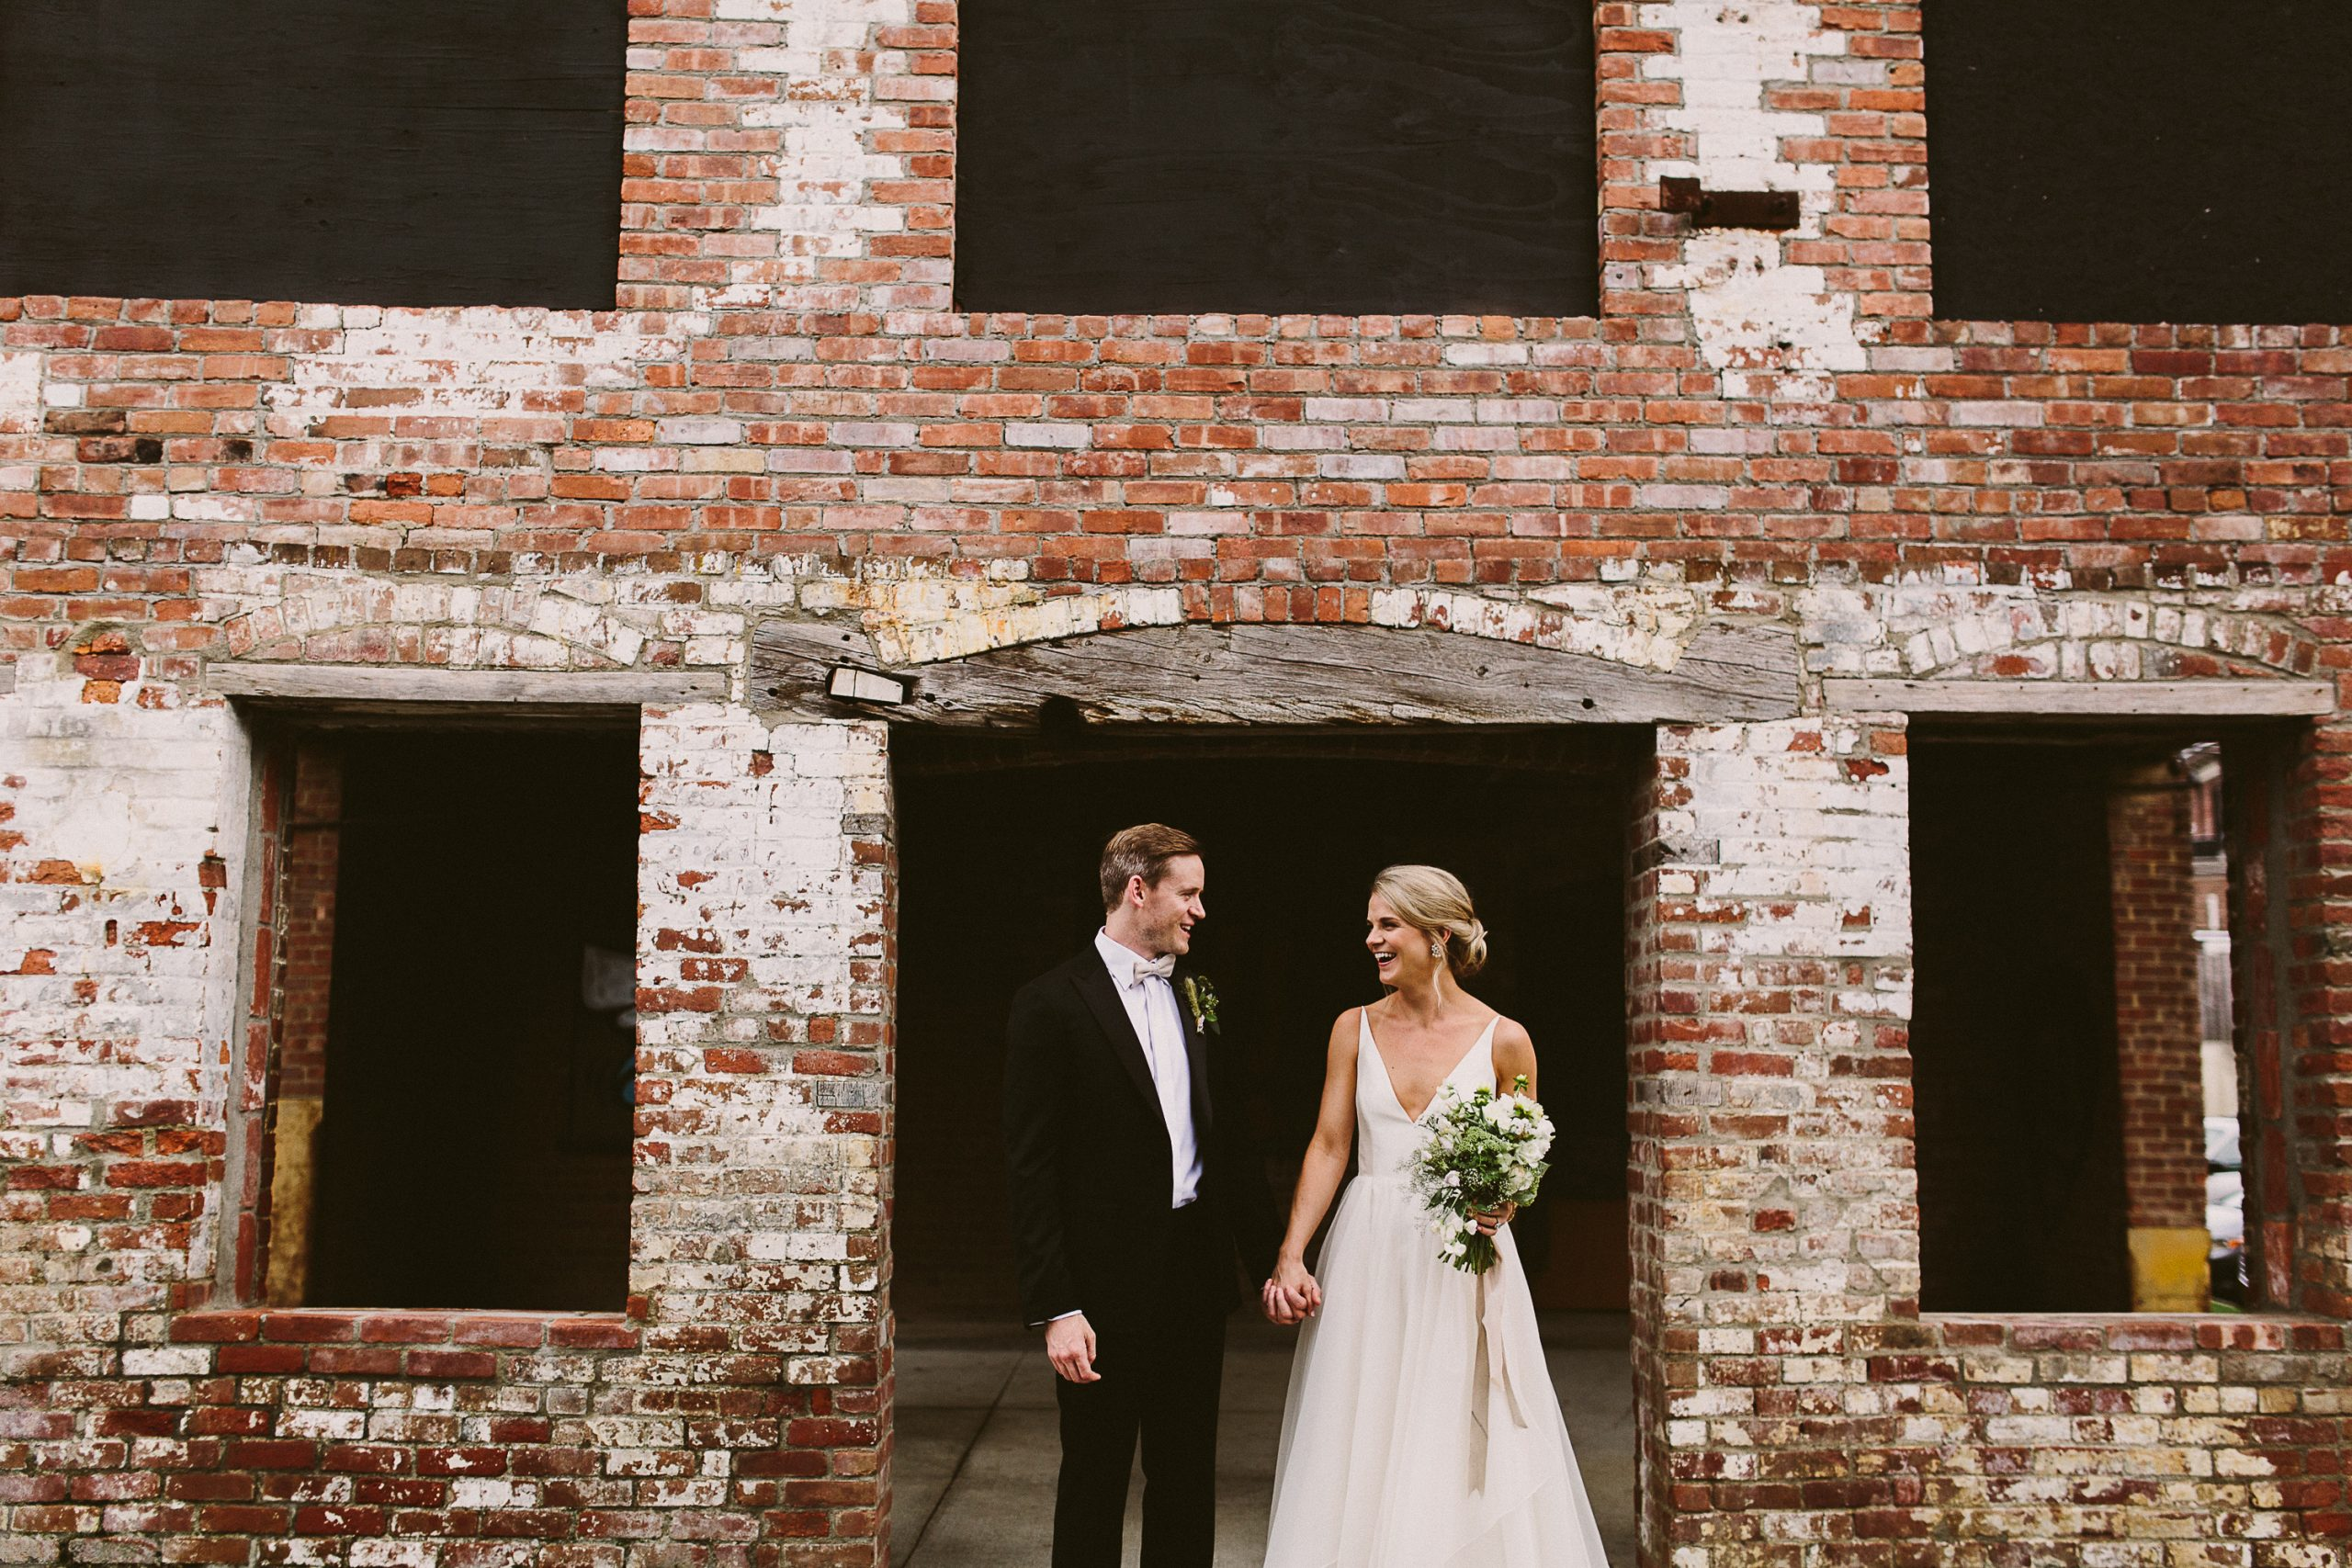 Couple smiling in front of brick building